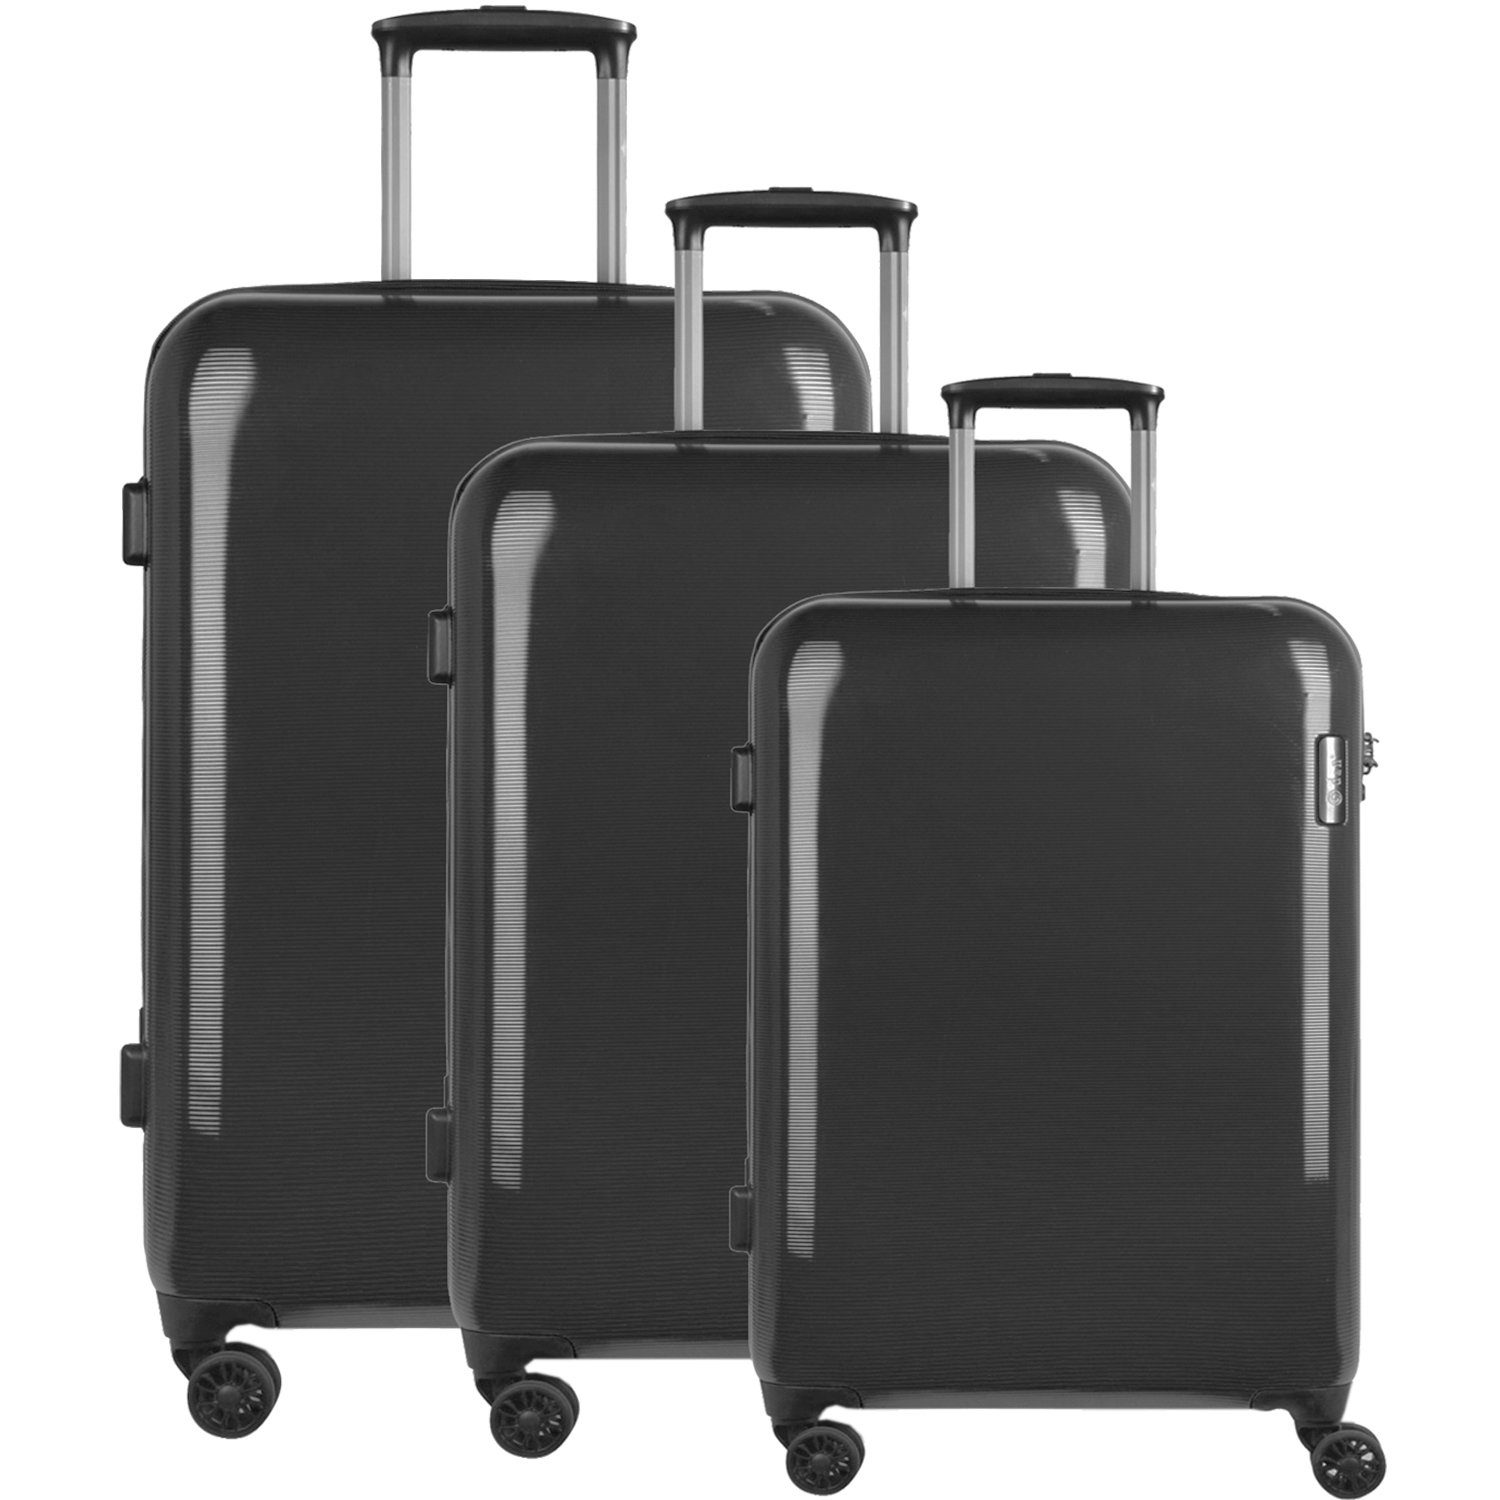 d & n Travel Line 8200 4-Rollen Trolley-Set 3-tlg.